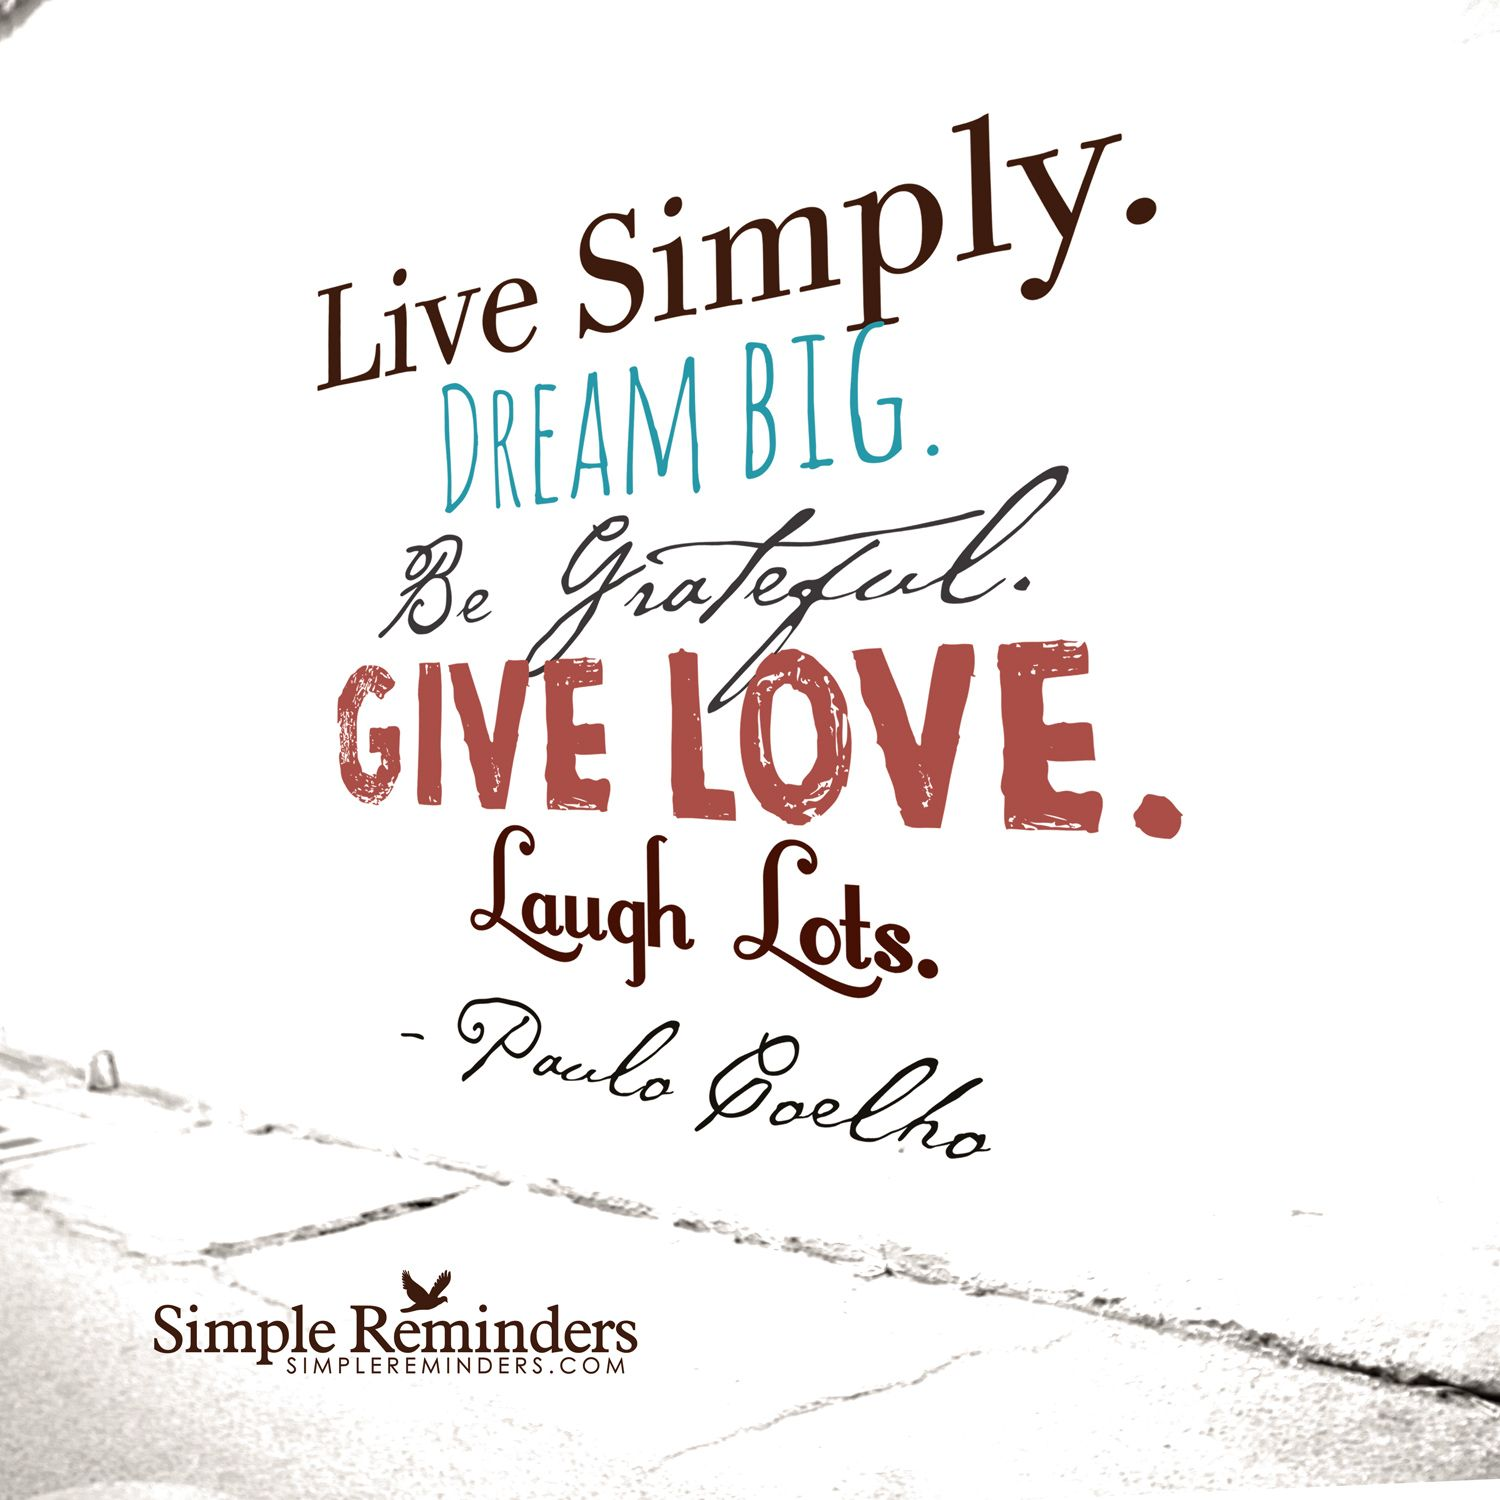 Live Love Laugh Quotes Dream Big Live Simplydream Bigbe Gratefulgive Lovelaugh